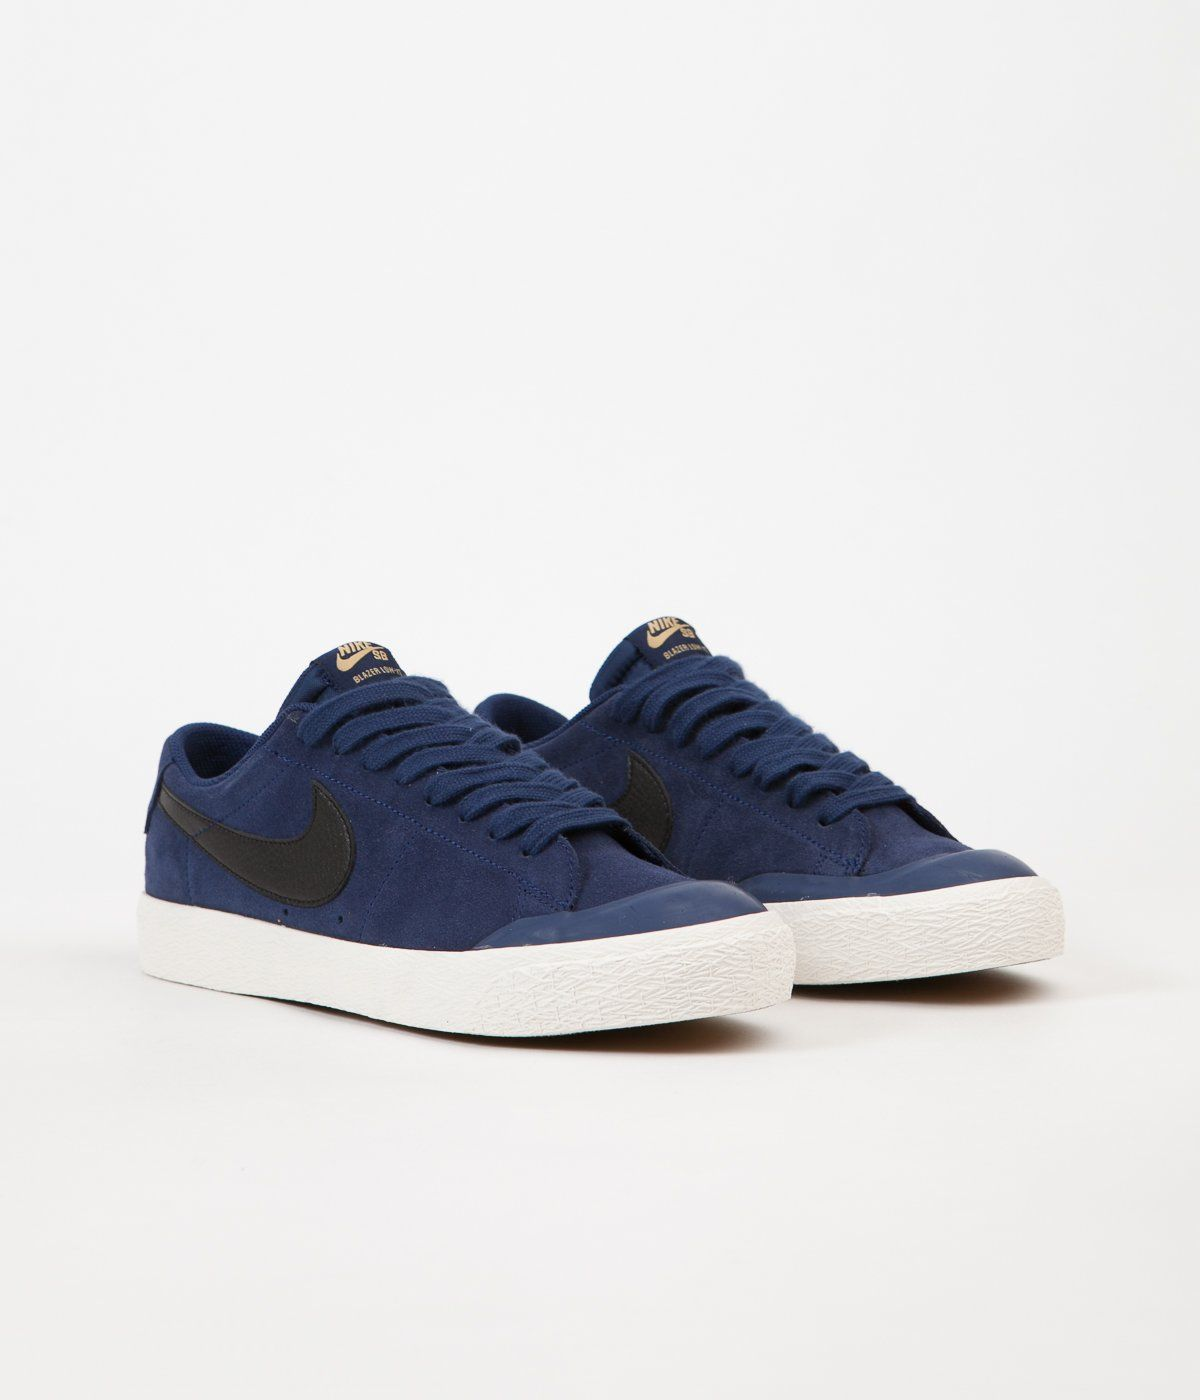 buying cheap info for high quality Nike SB Blazer Low XT Shoes - Binary Blue / Black - Gum ...